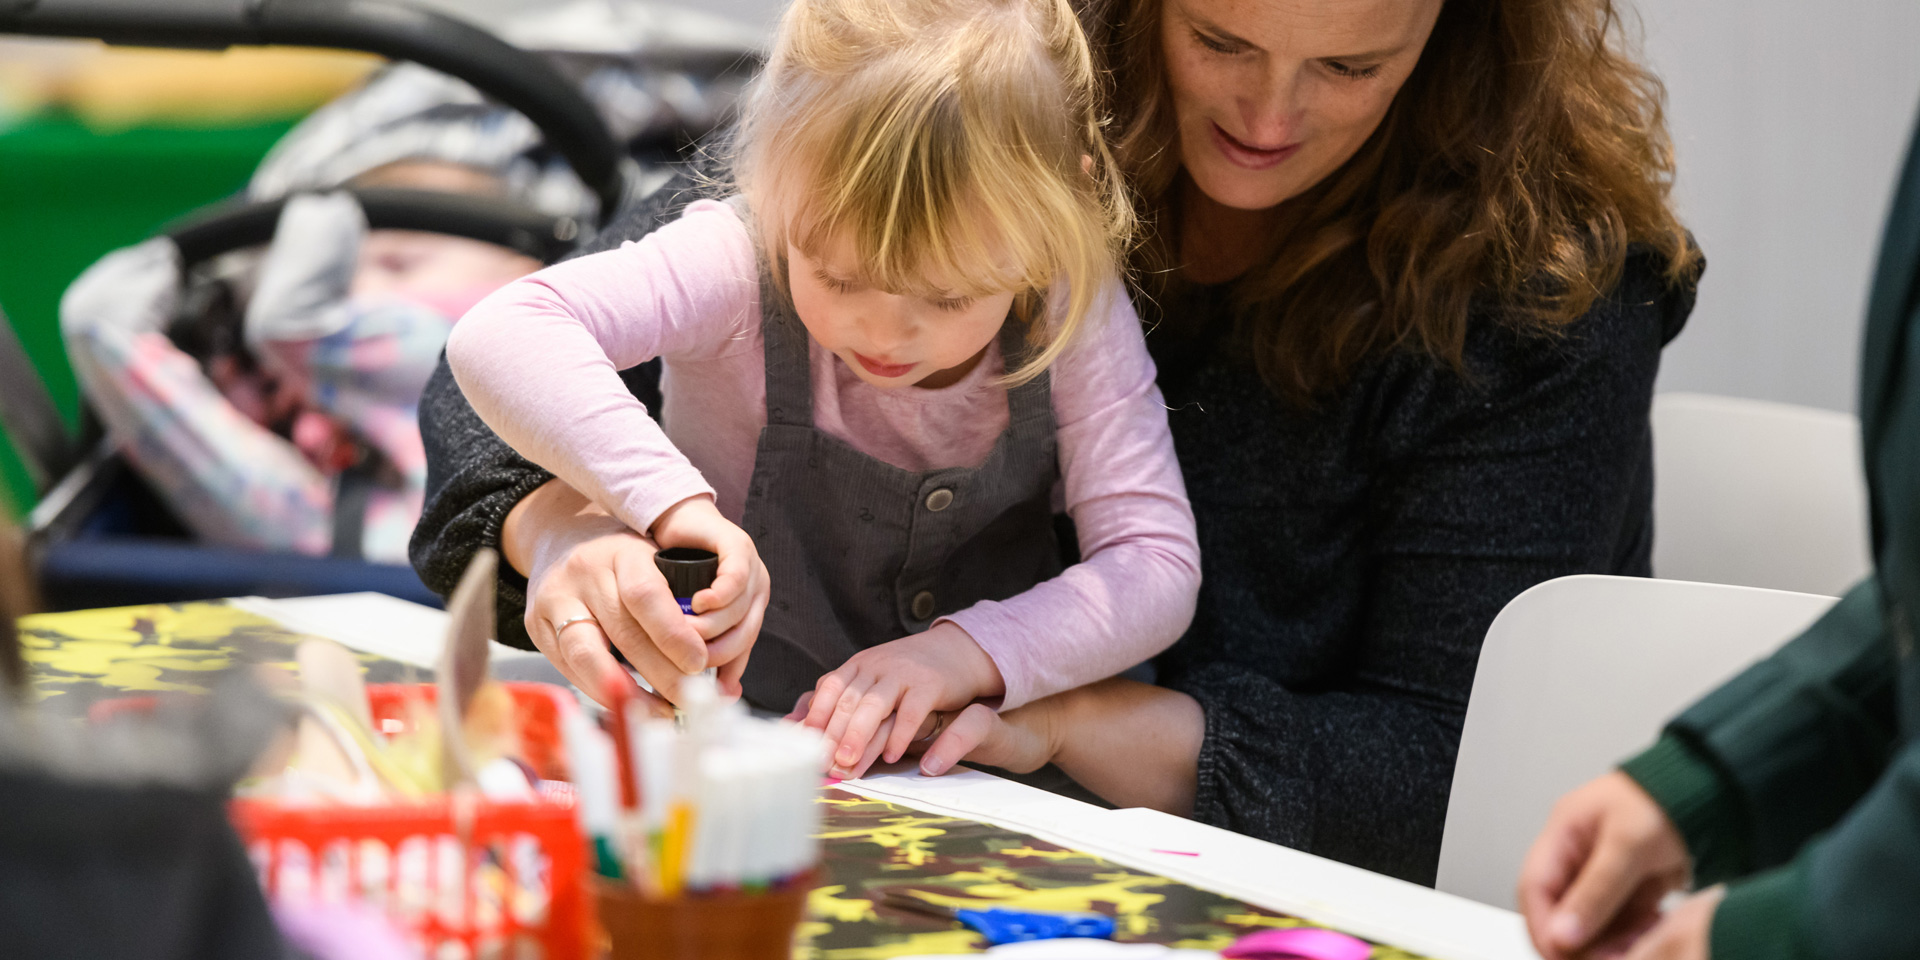 Craft activities at the National Army Museum